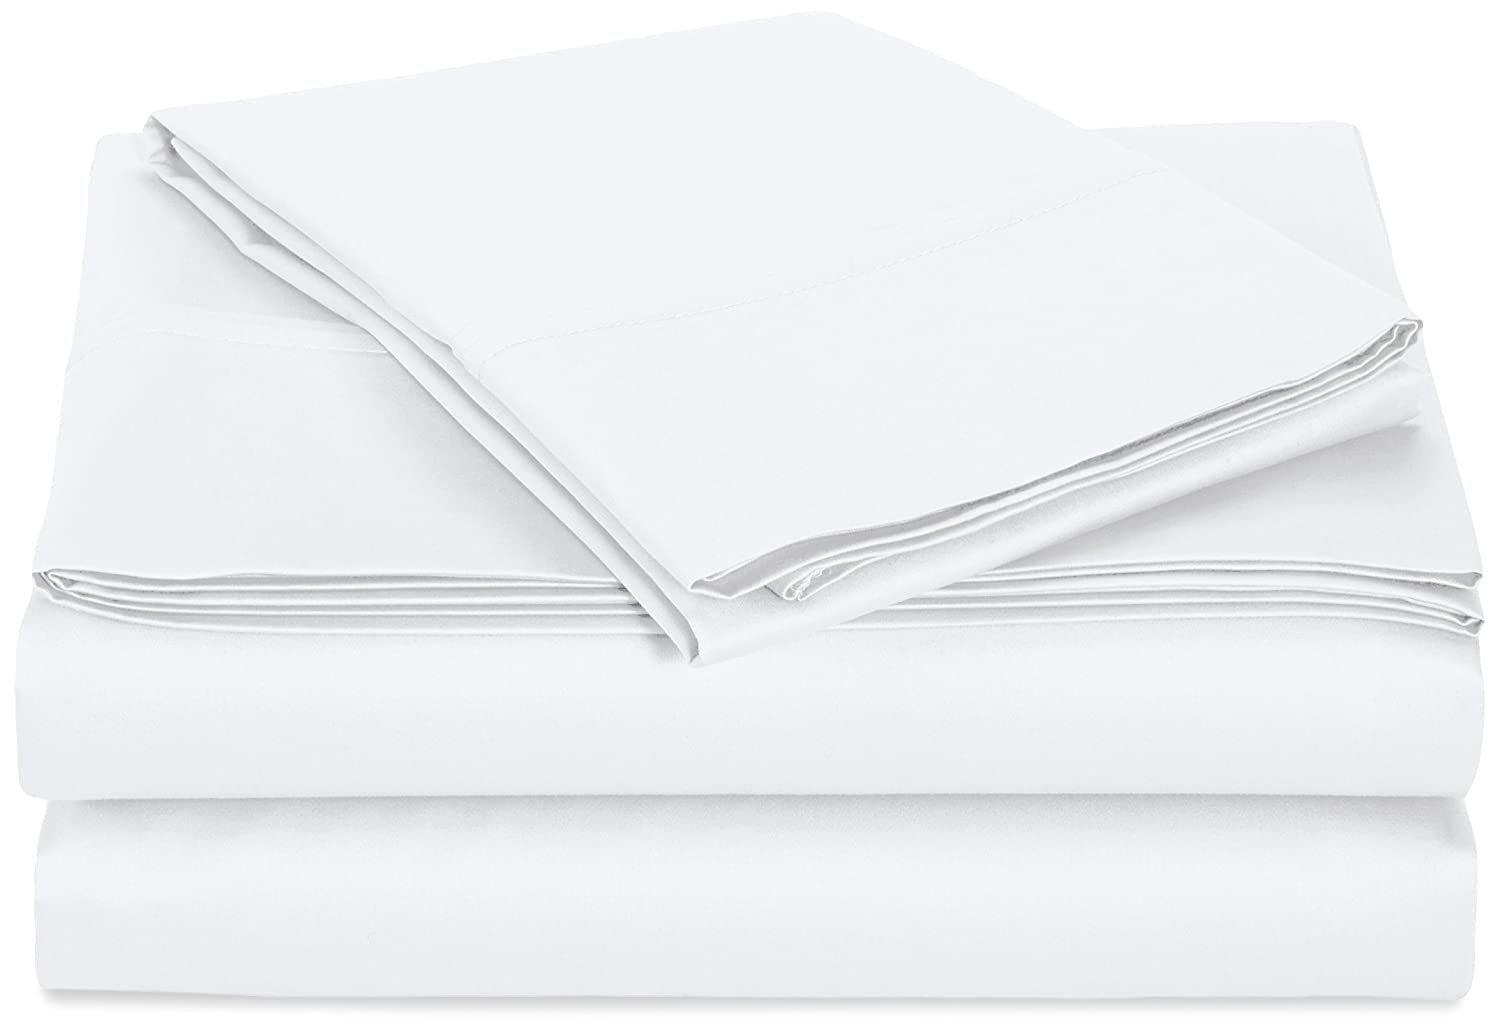 AmazonBasics 400 Thread Count Sheet Set, 100% Cotton, Sateen Finish - Twin, White